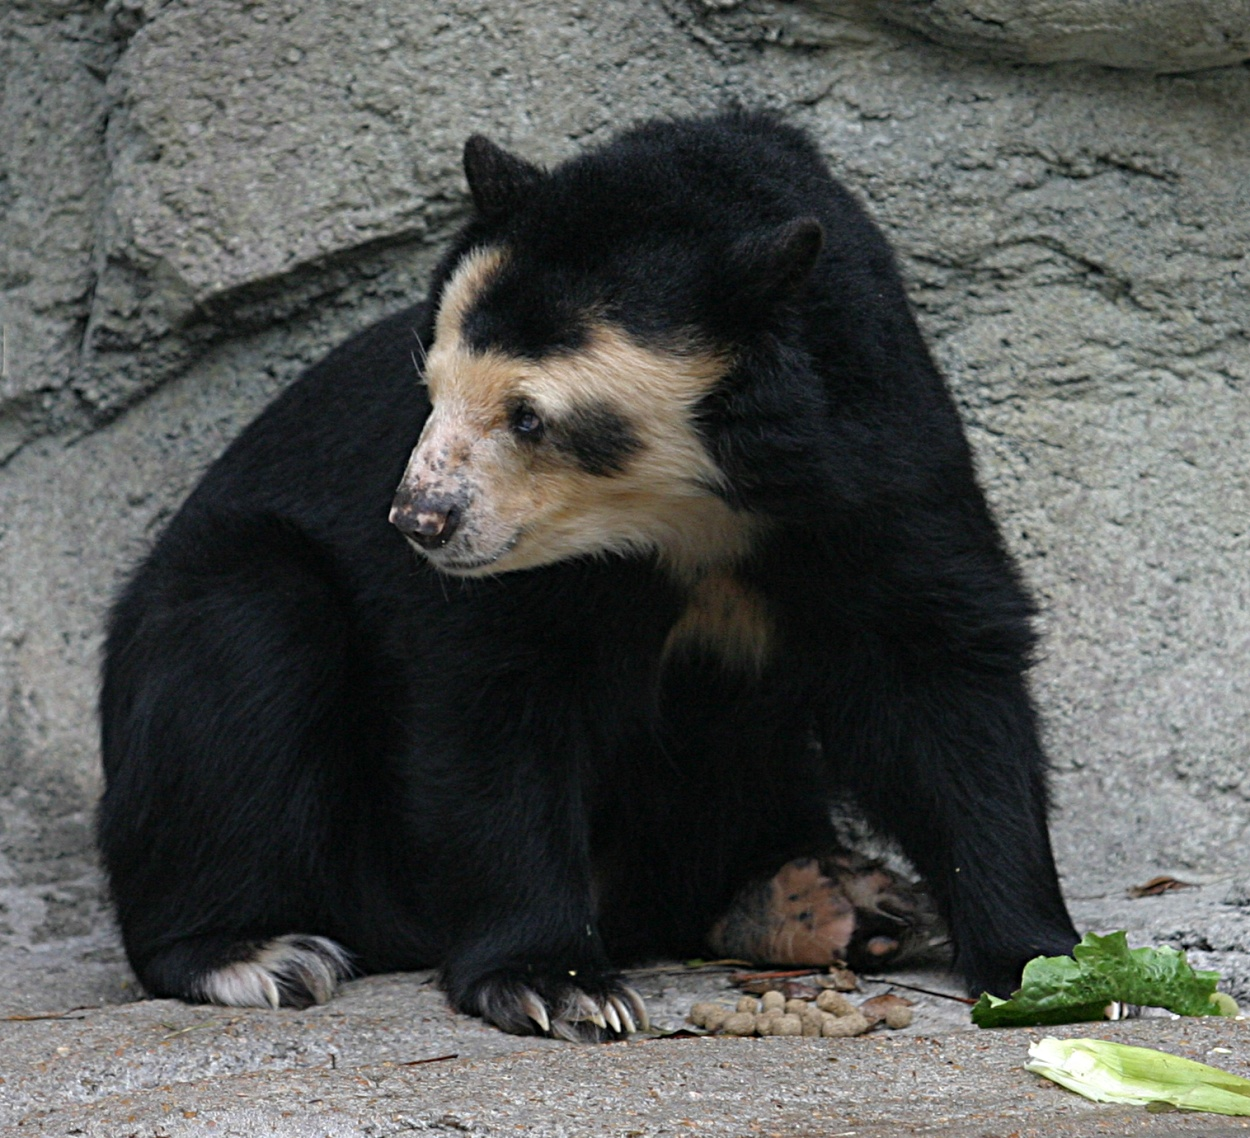 File:Spectacled Bear - Houston Zoo.jpg - Wikimedia Commons